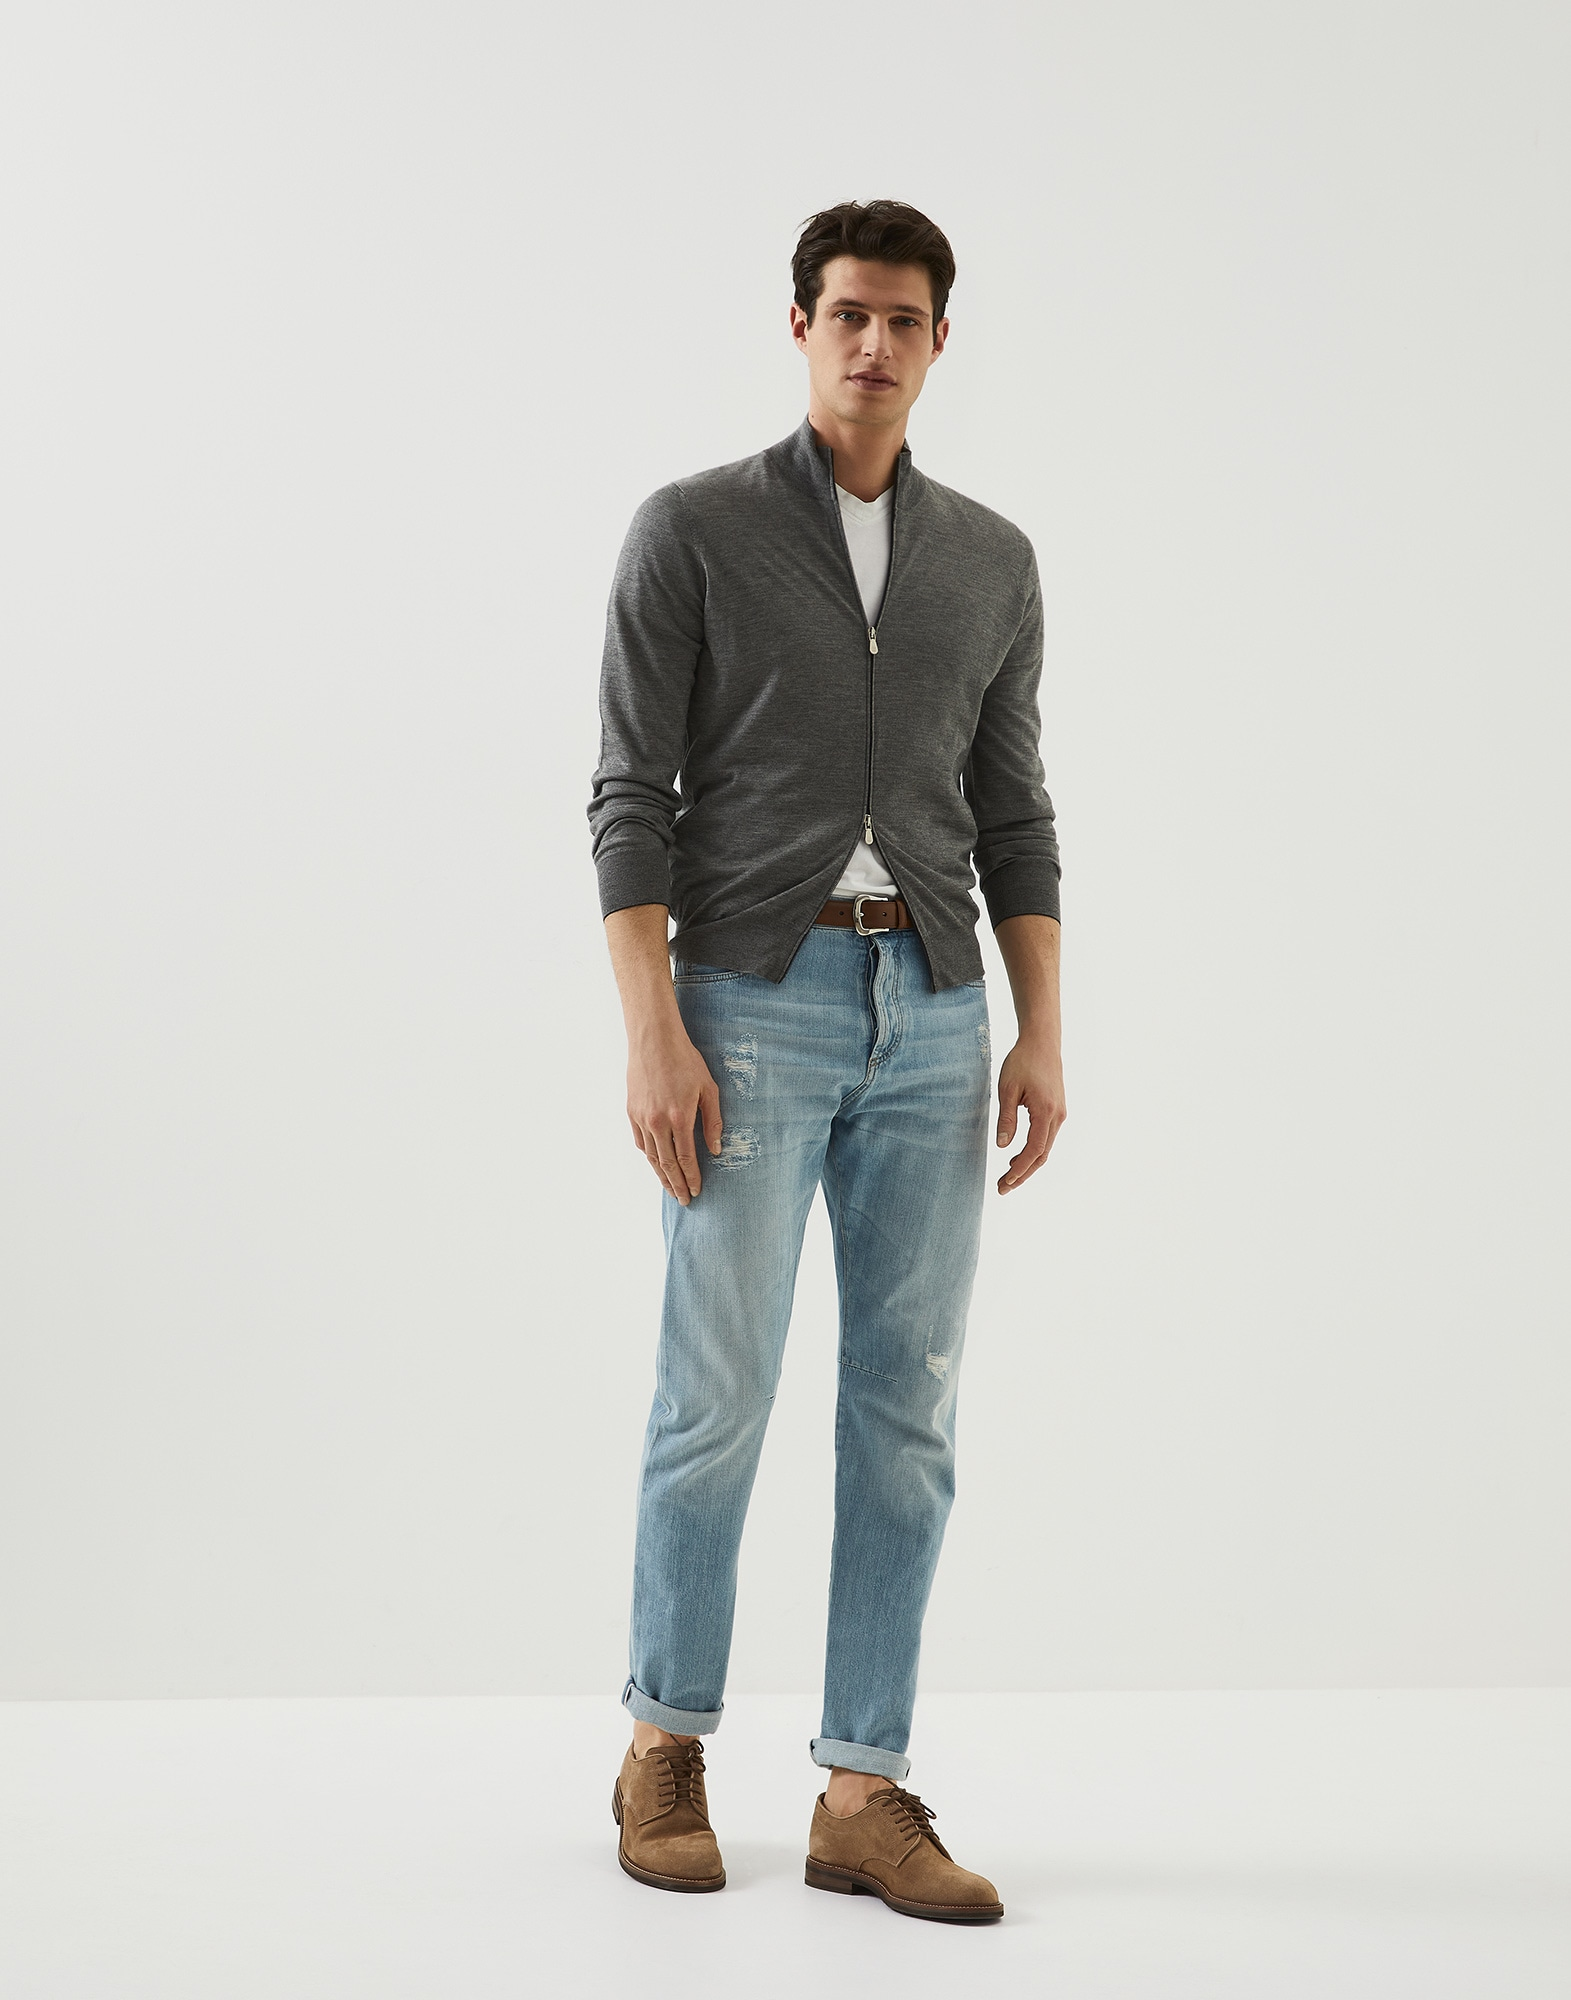 Zip-front Cardigan - Full look